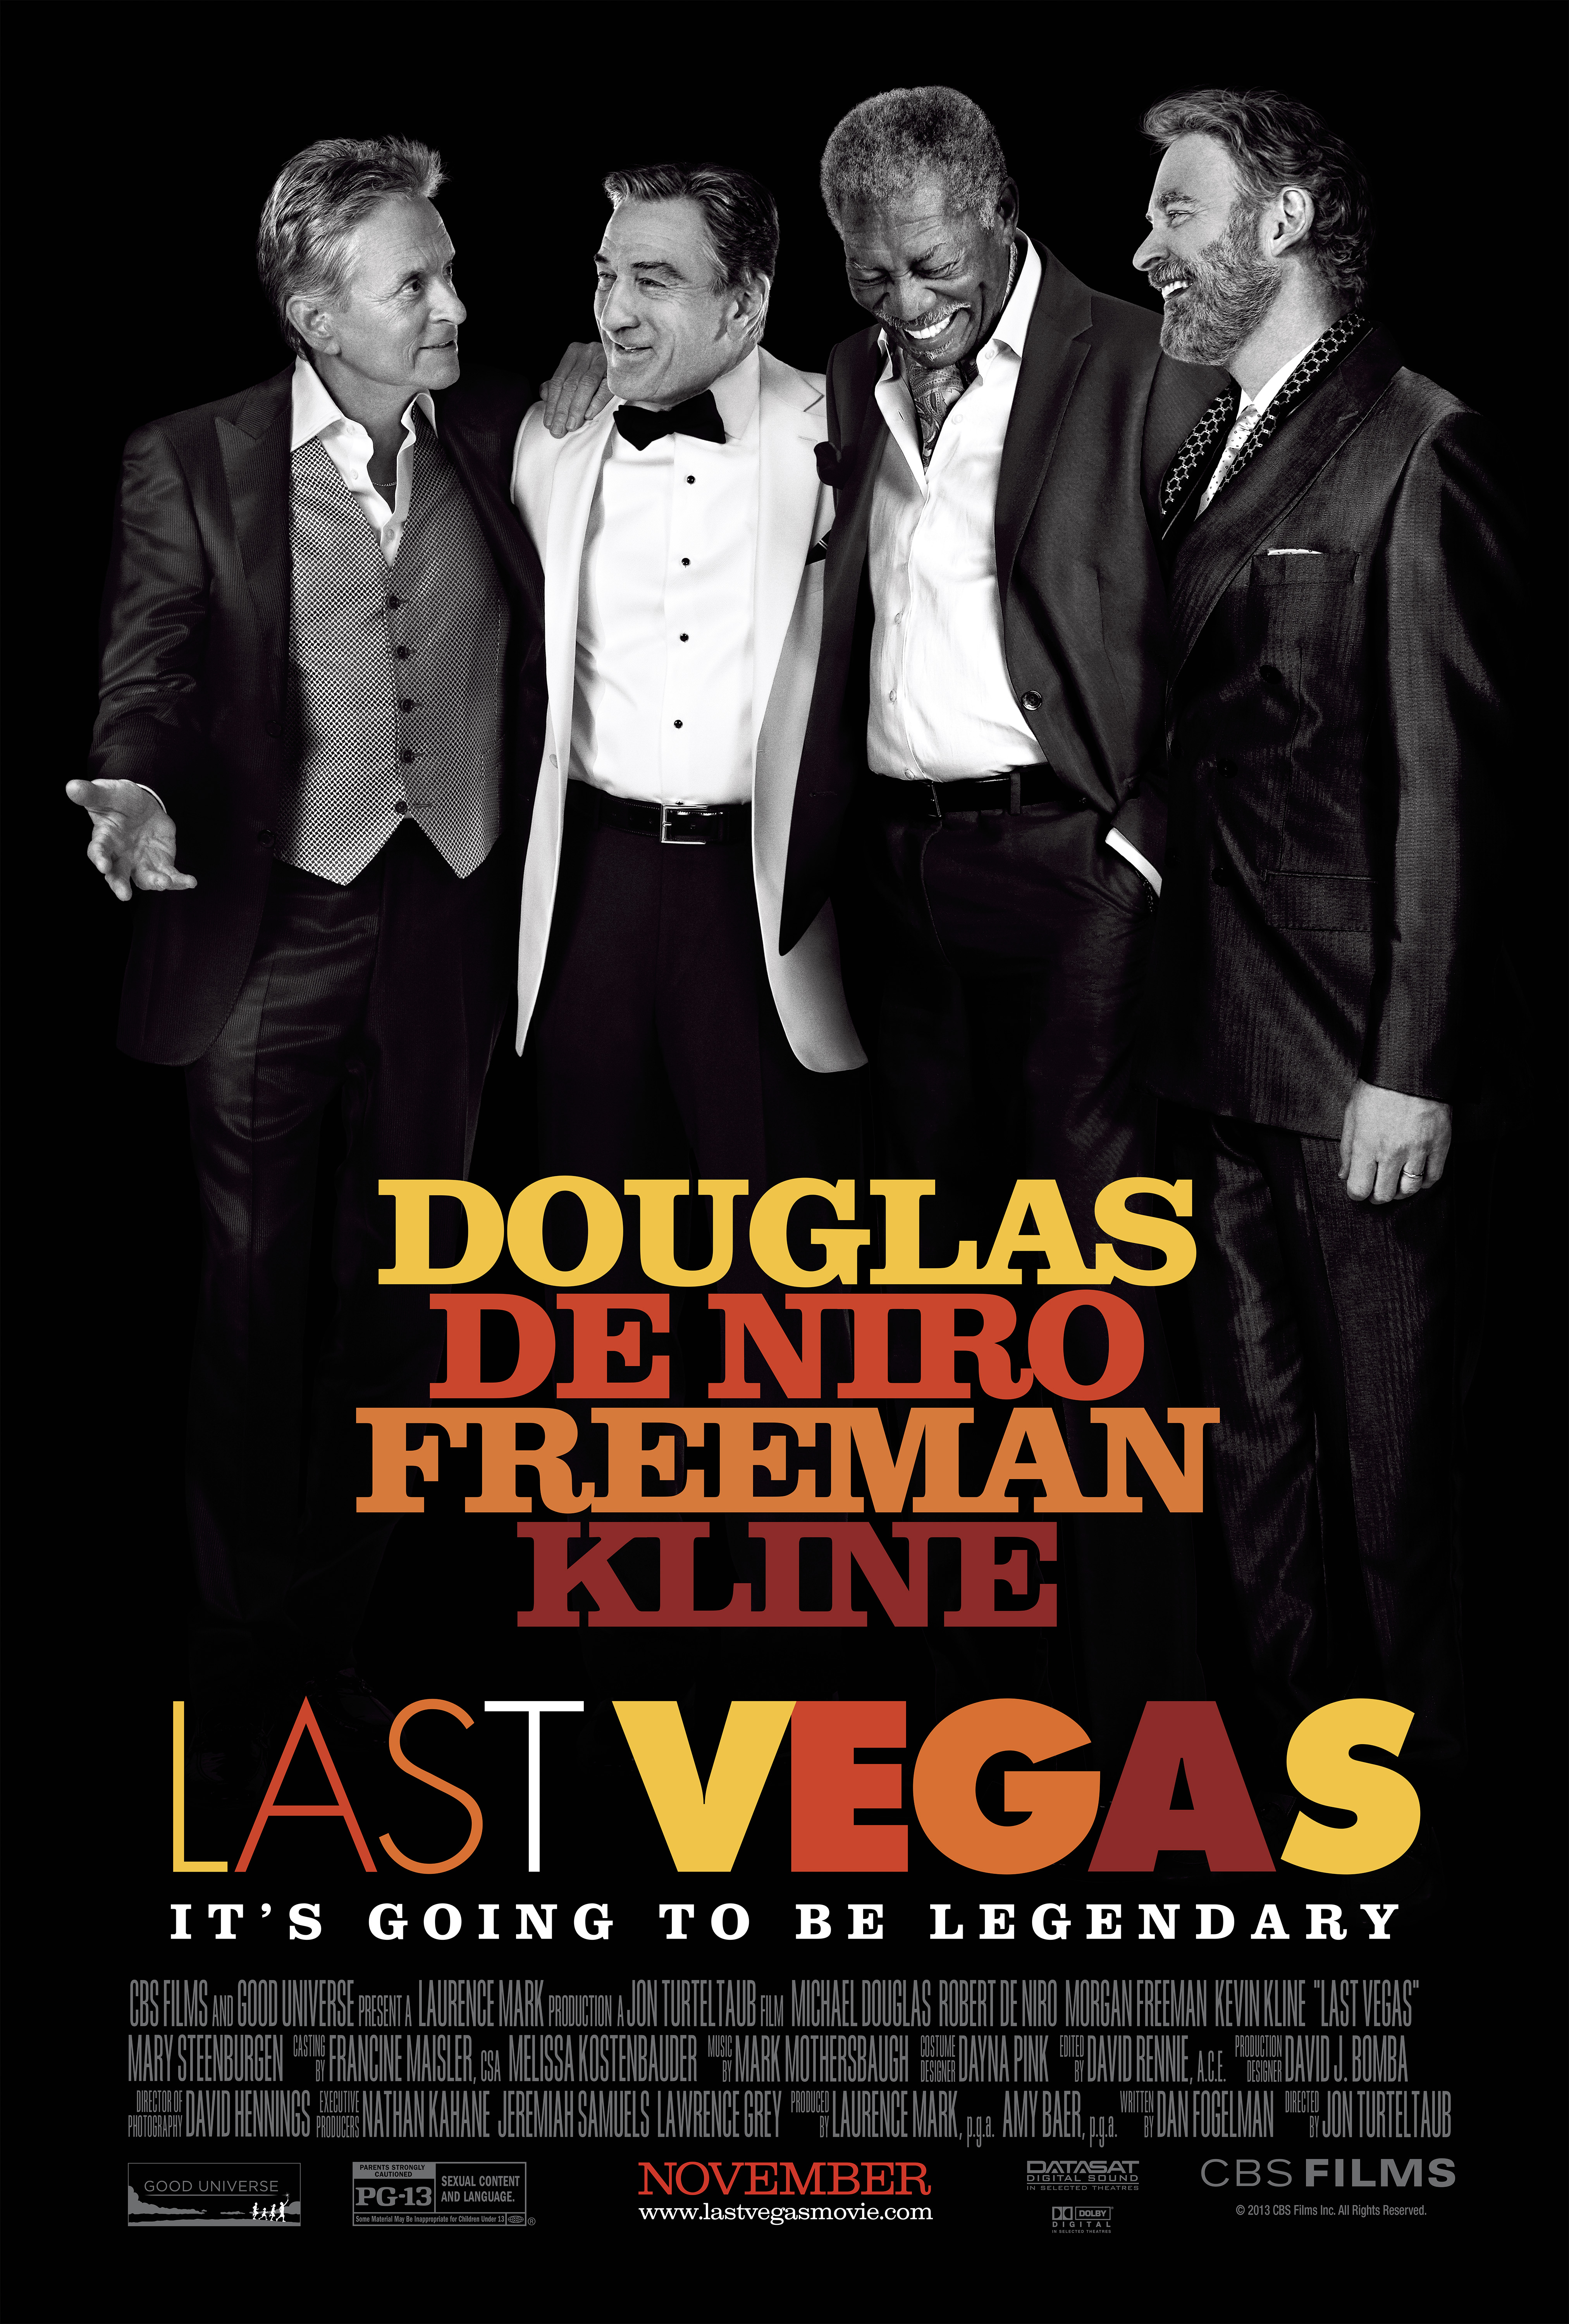 248158id1f lastvegas 1sht1 Last Vegas Features the Best Bachelor Party with Official Clips